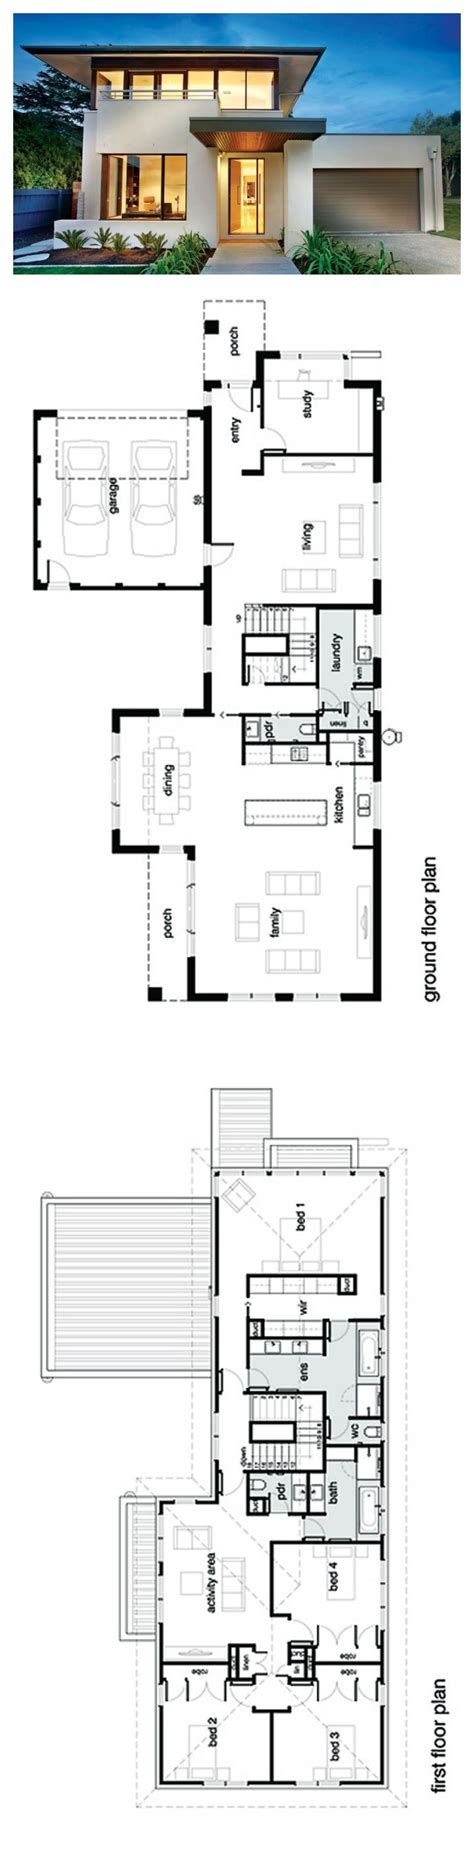 floor plan of a modern house the 25 best ideas about modern house plans on modern house floor plans modern